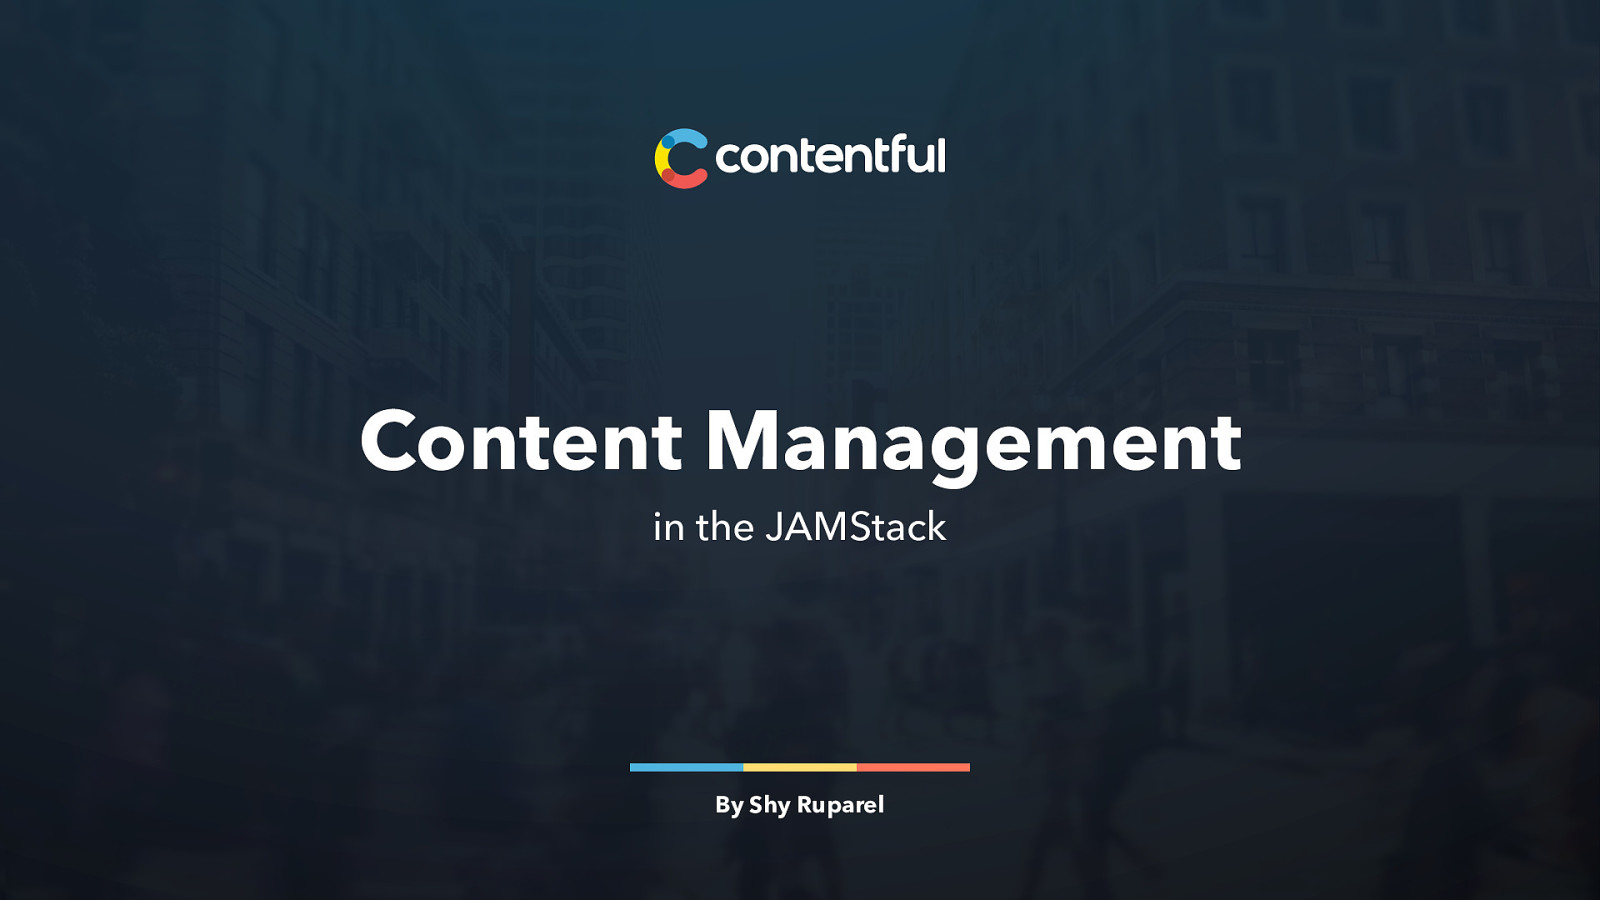 Content Management in the JAMStack